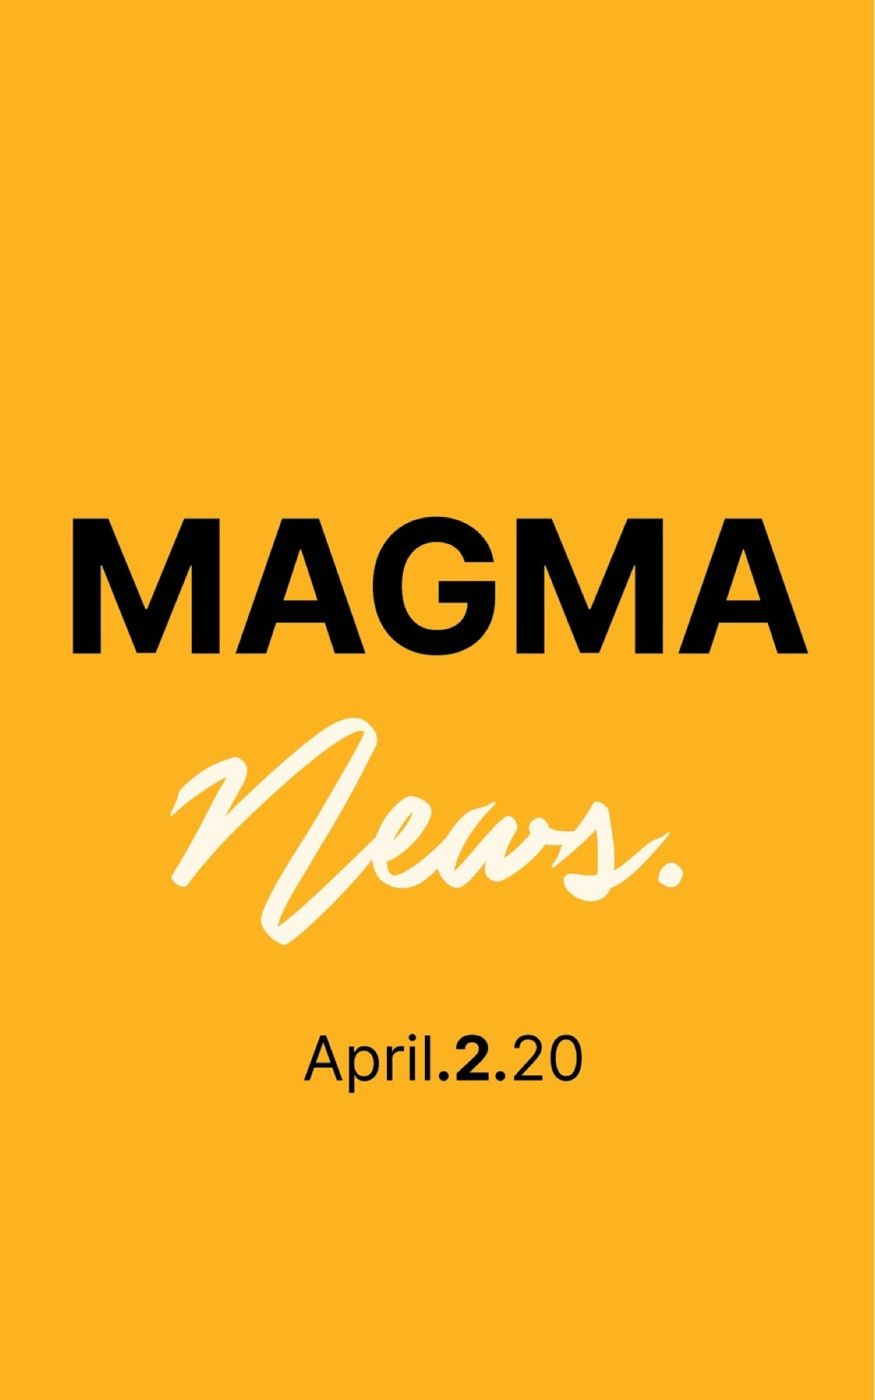 Magma News | April 2, 2020  - There are now officially 1 Million coronavirus cases. - How helpful are Facemasks? - Trump has invoked Defese Production Act for Ventilators - Apple May be releasing a new iPhone this month - Meet the Peloton trainer helping the worlds best athletes stay in shape during quarantine. - Zoom conferencing reaches 200 million daily active users.